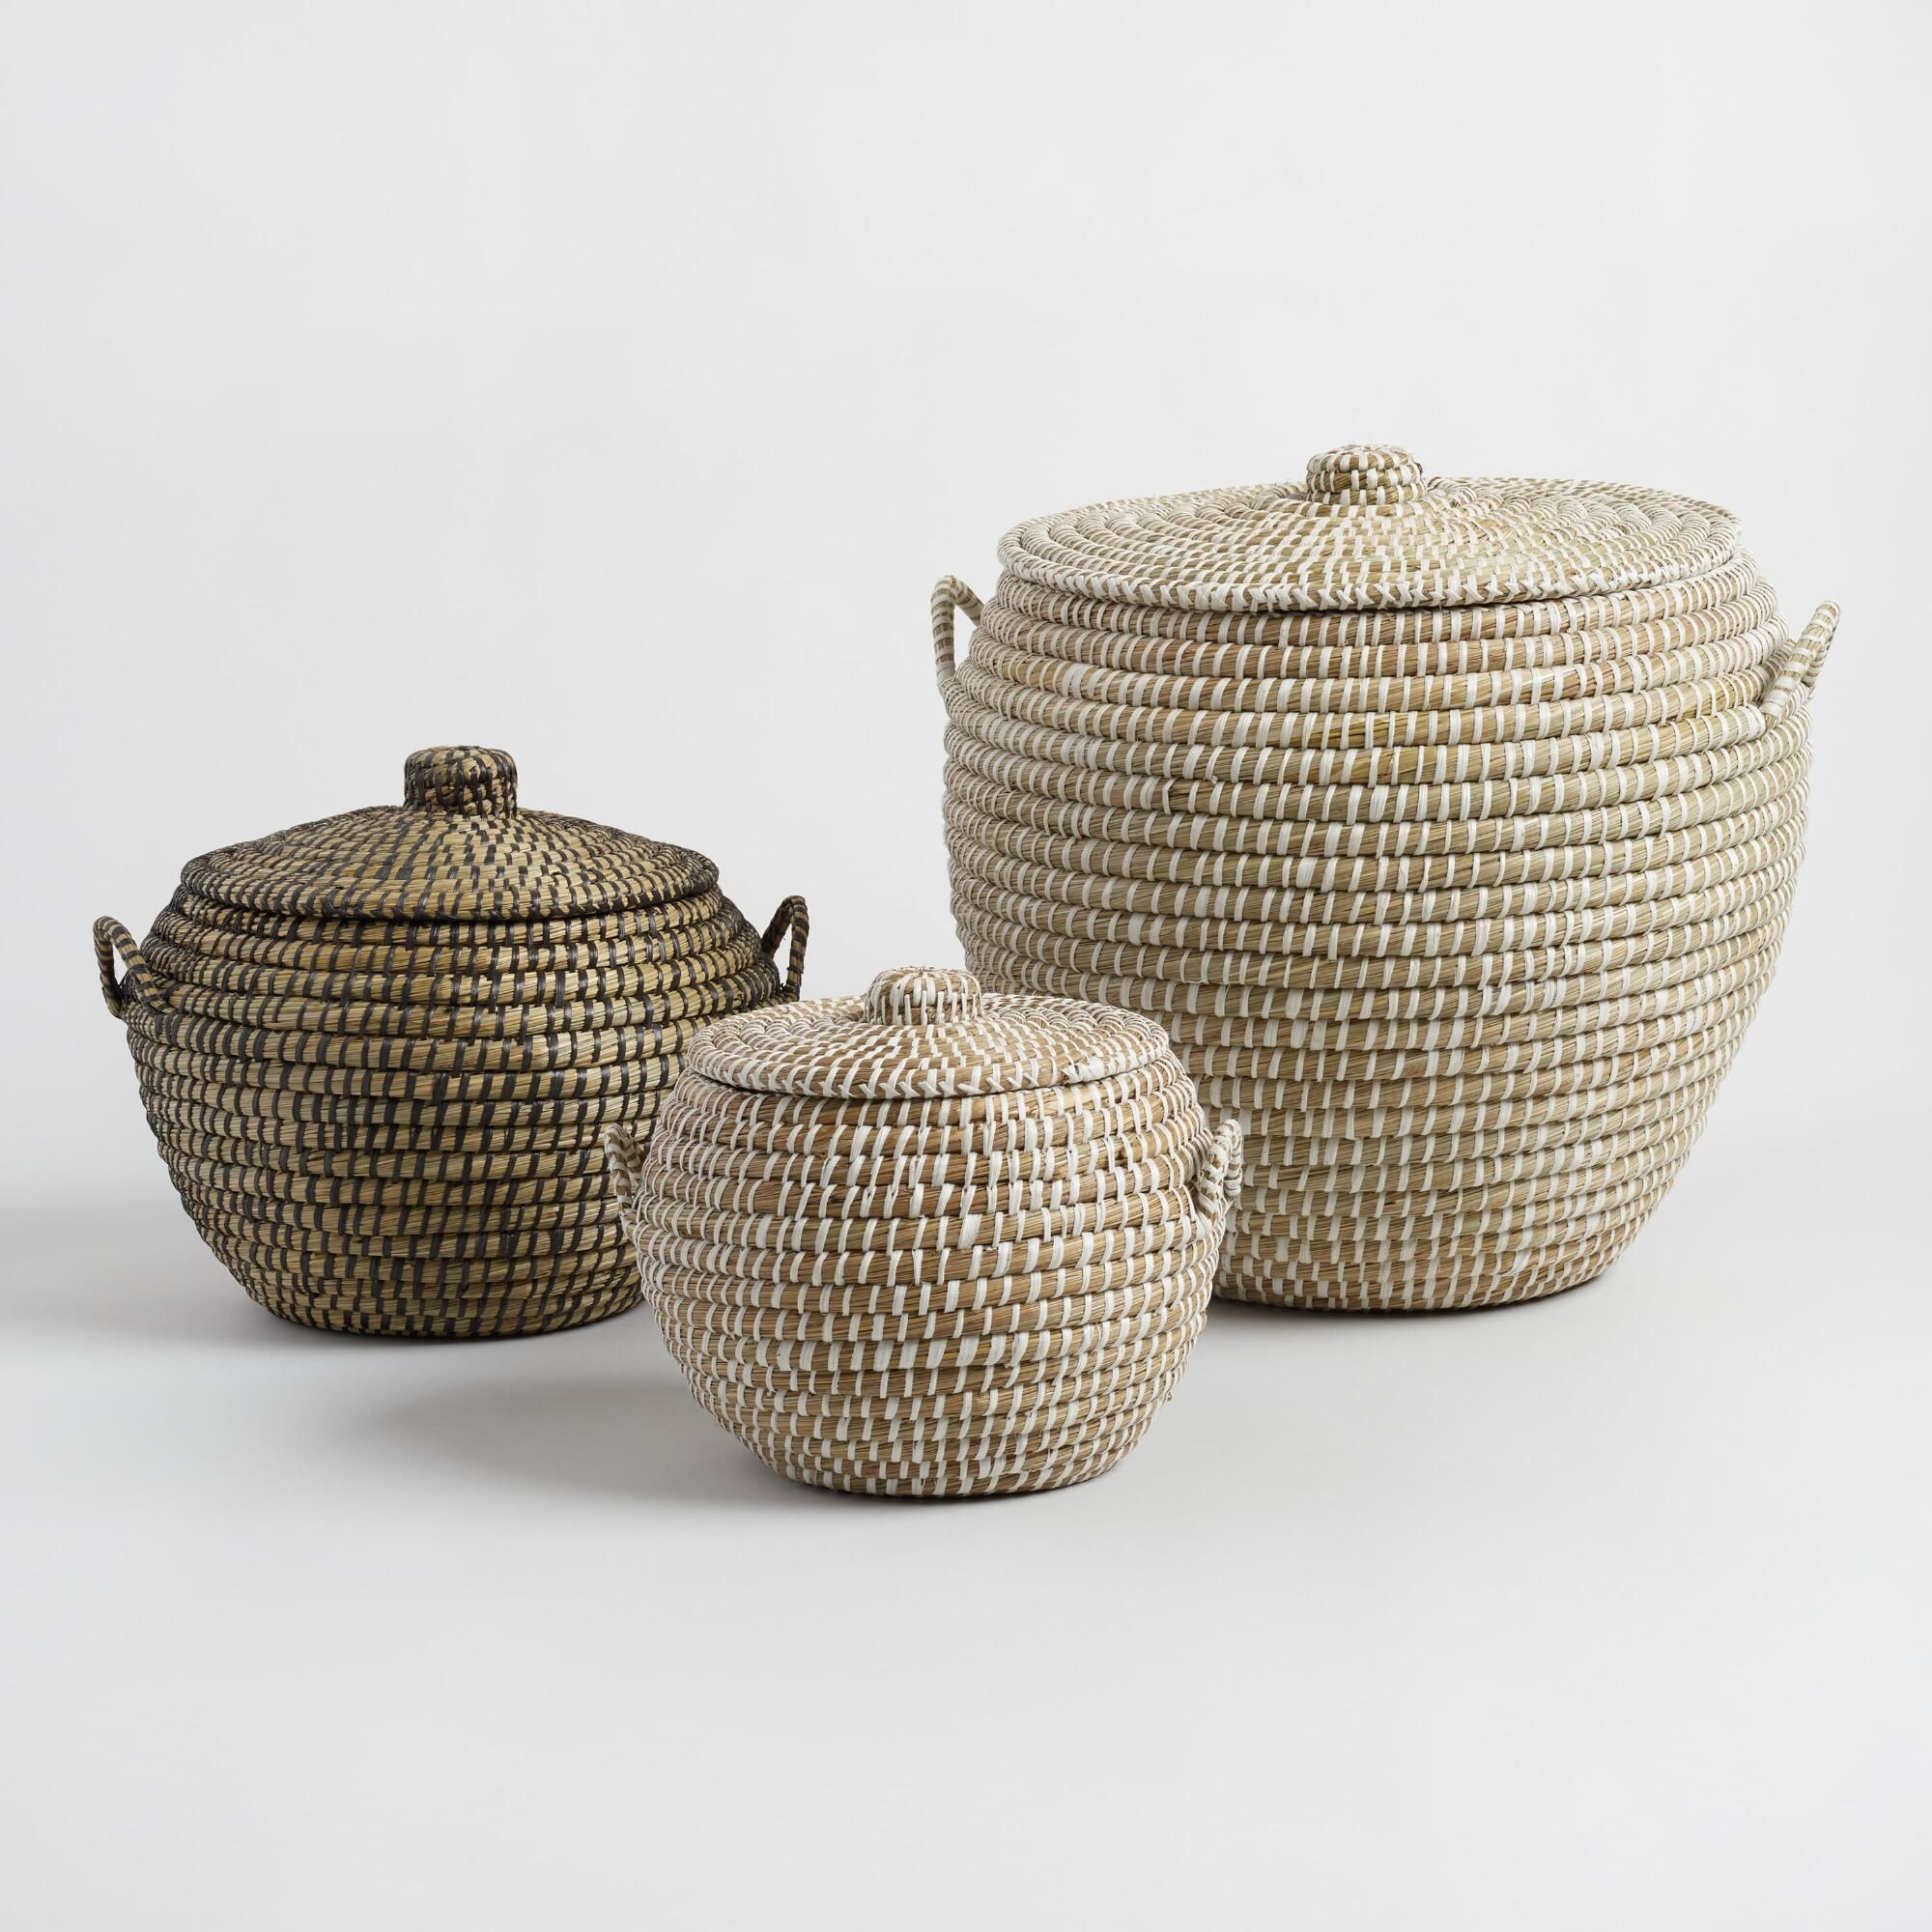 Seagrass Penelope Tote Baskets with Lids | Decor | Pinterest | Decor ...